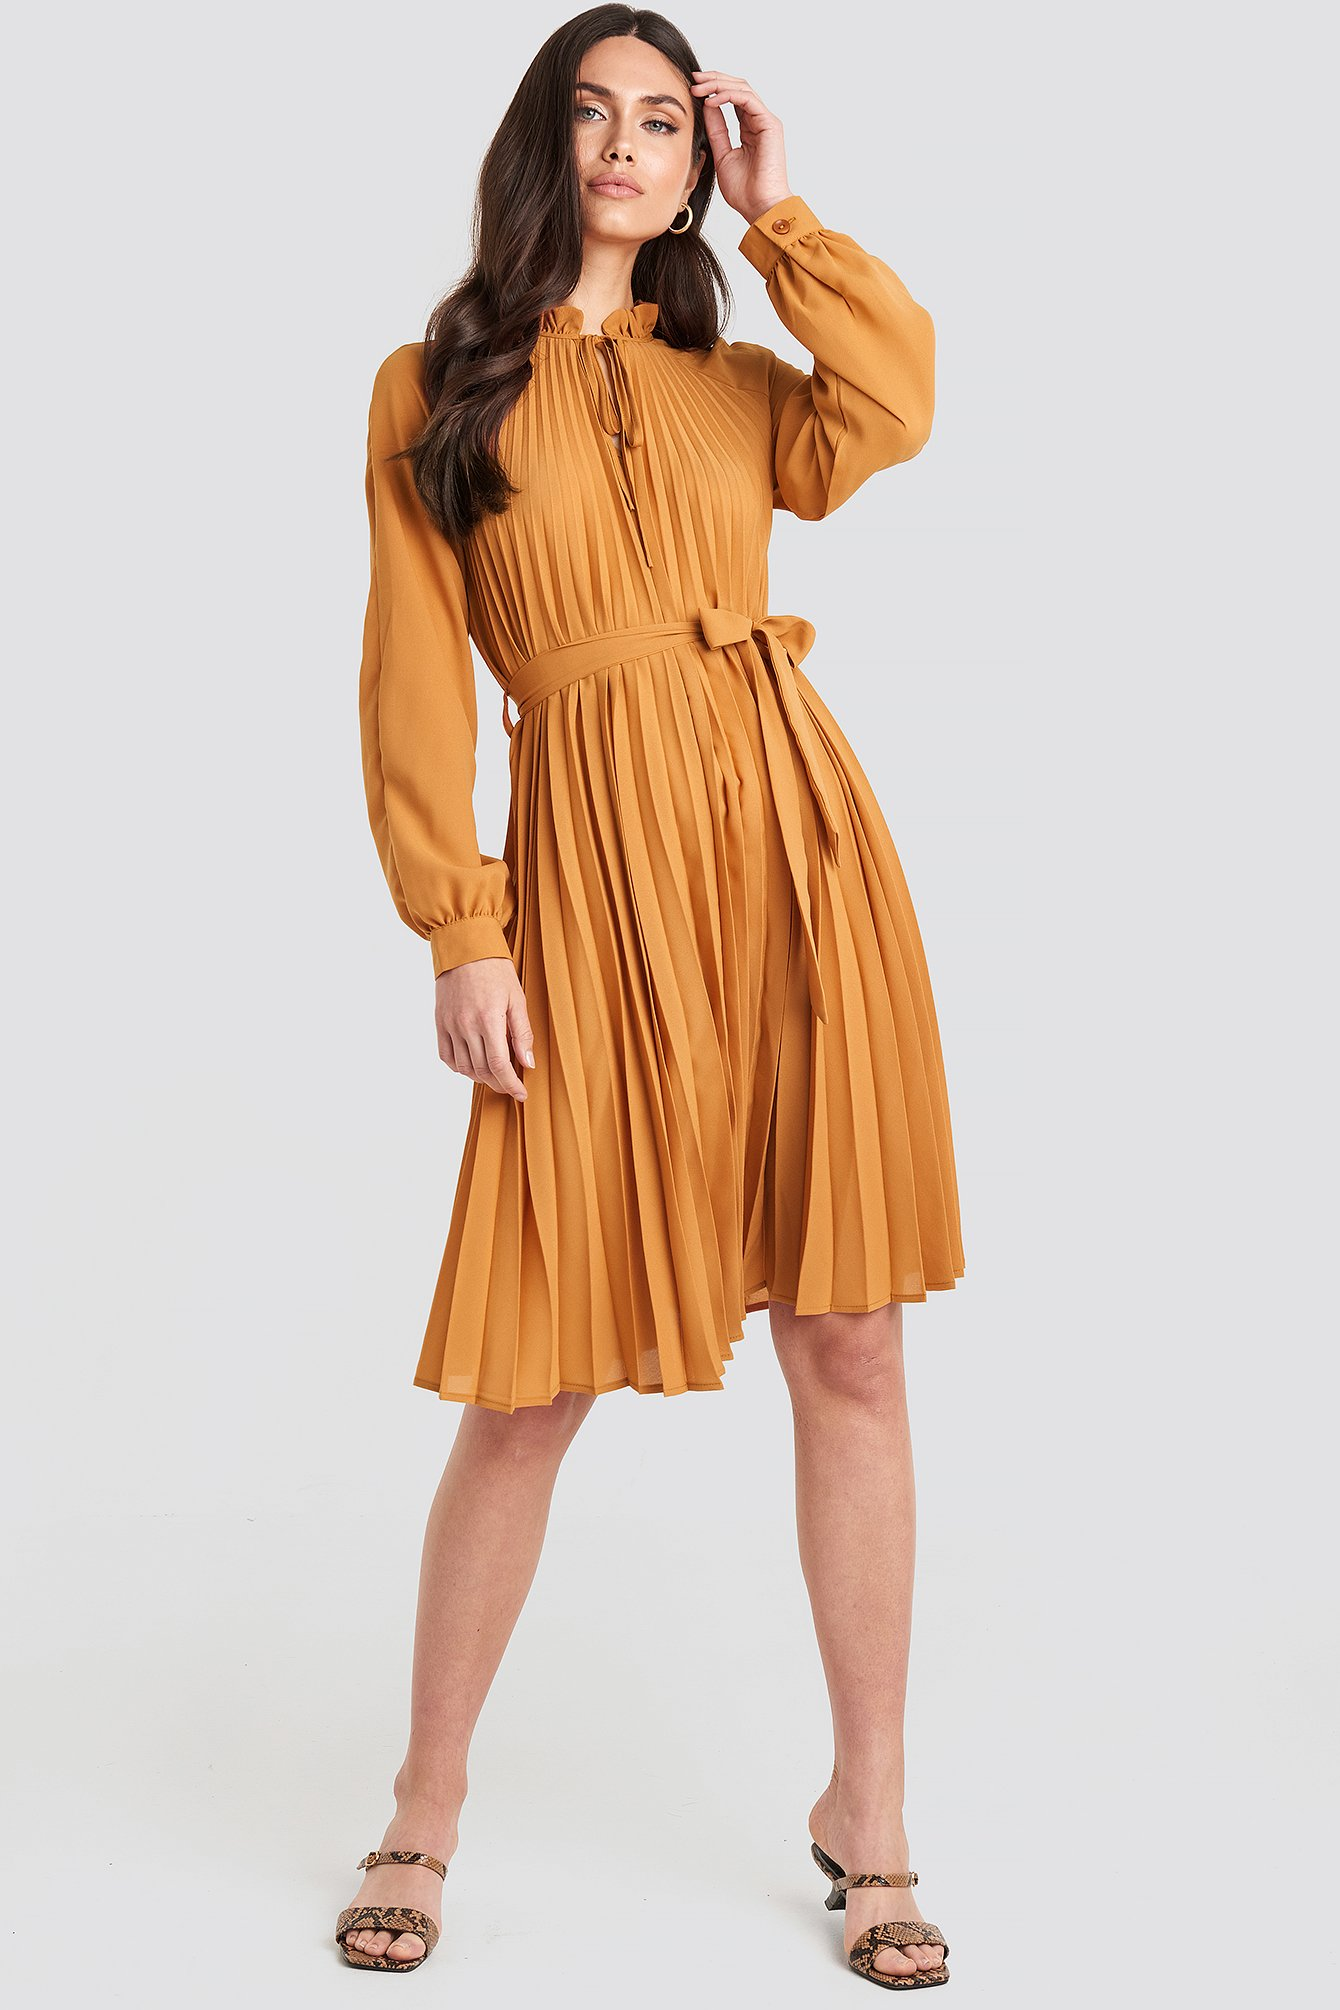 Tied Waist Pleated Skirt Dress Orange by Na Kd Trend